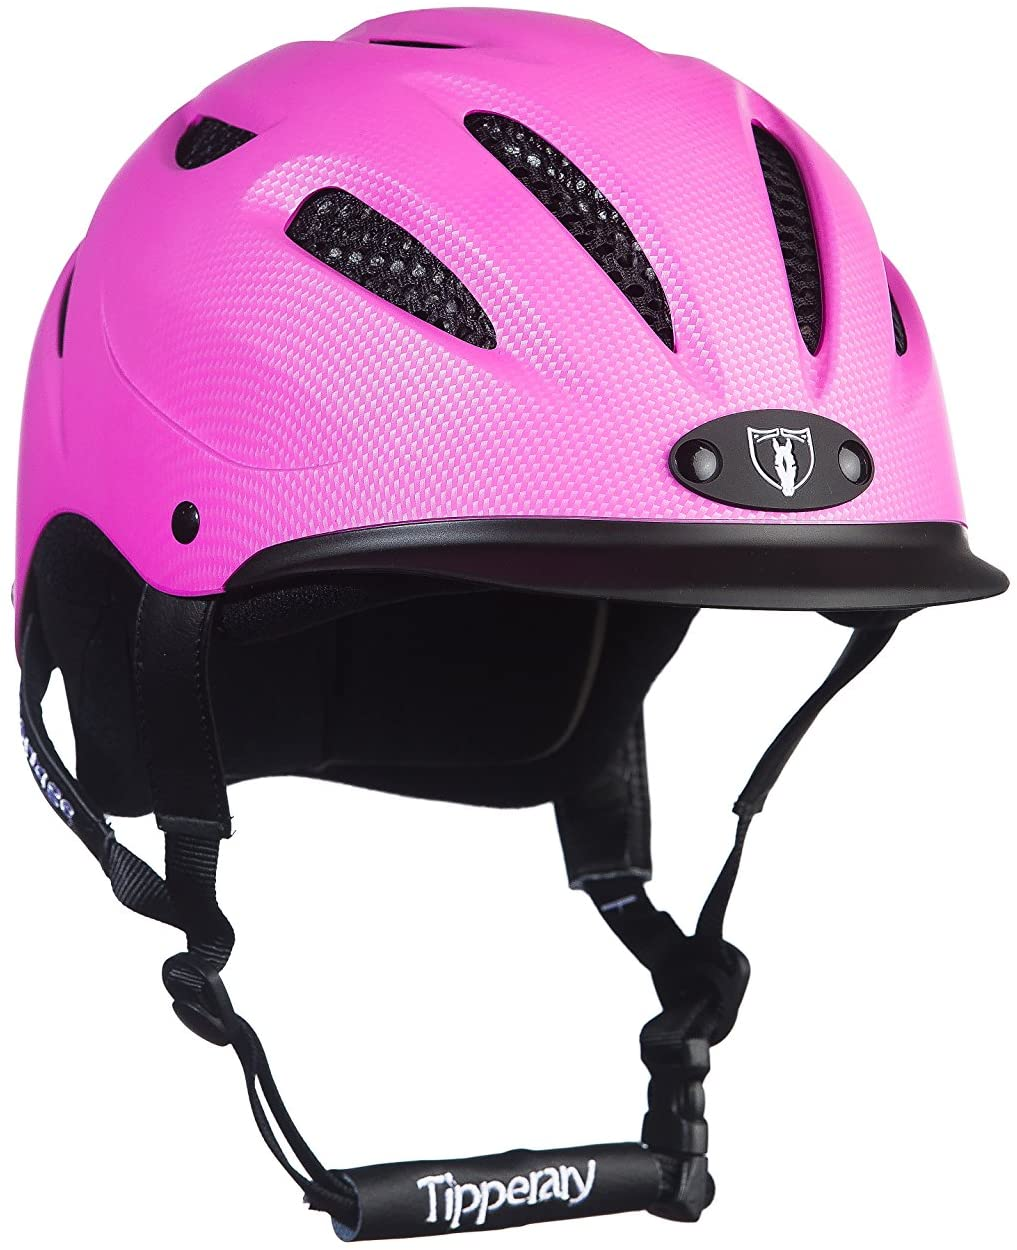 TIPPERARY EQUESTRIAN Horse Riding Helmet - Sportage - Lightweight Cooling Horseback Riding Apparel - Safety Helmet with Superior Ventilation and Air Flow - Toddler - Pink - XXS